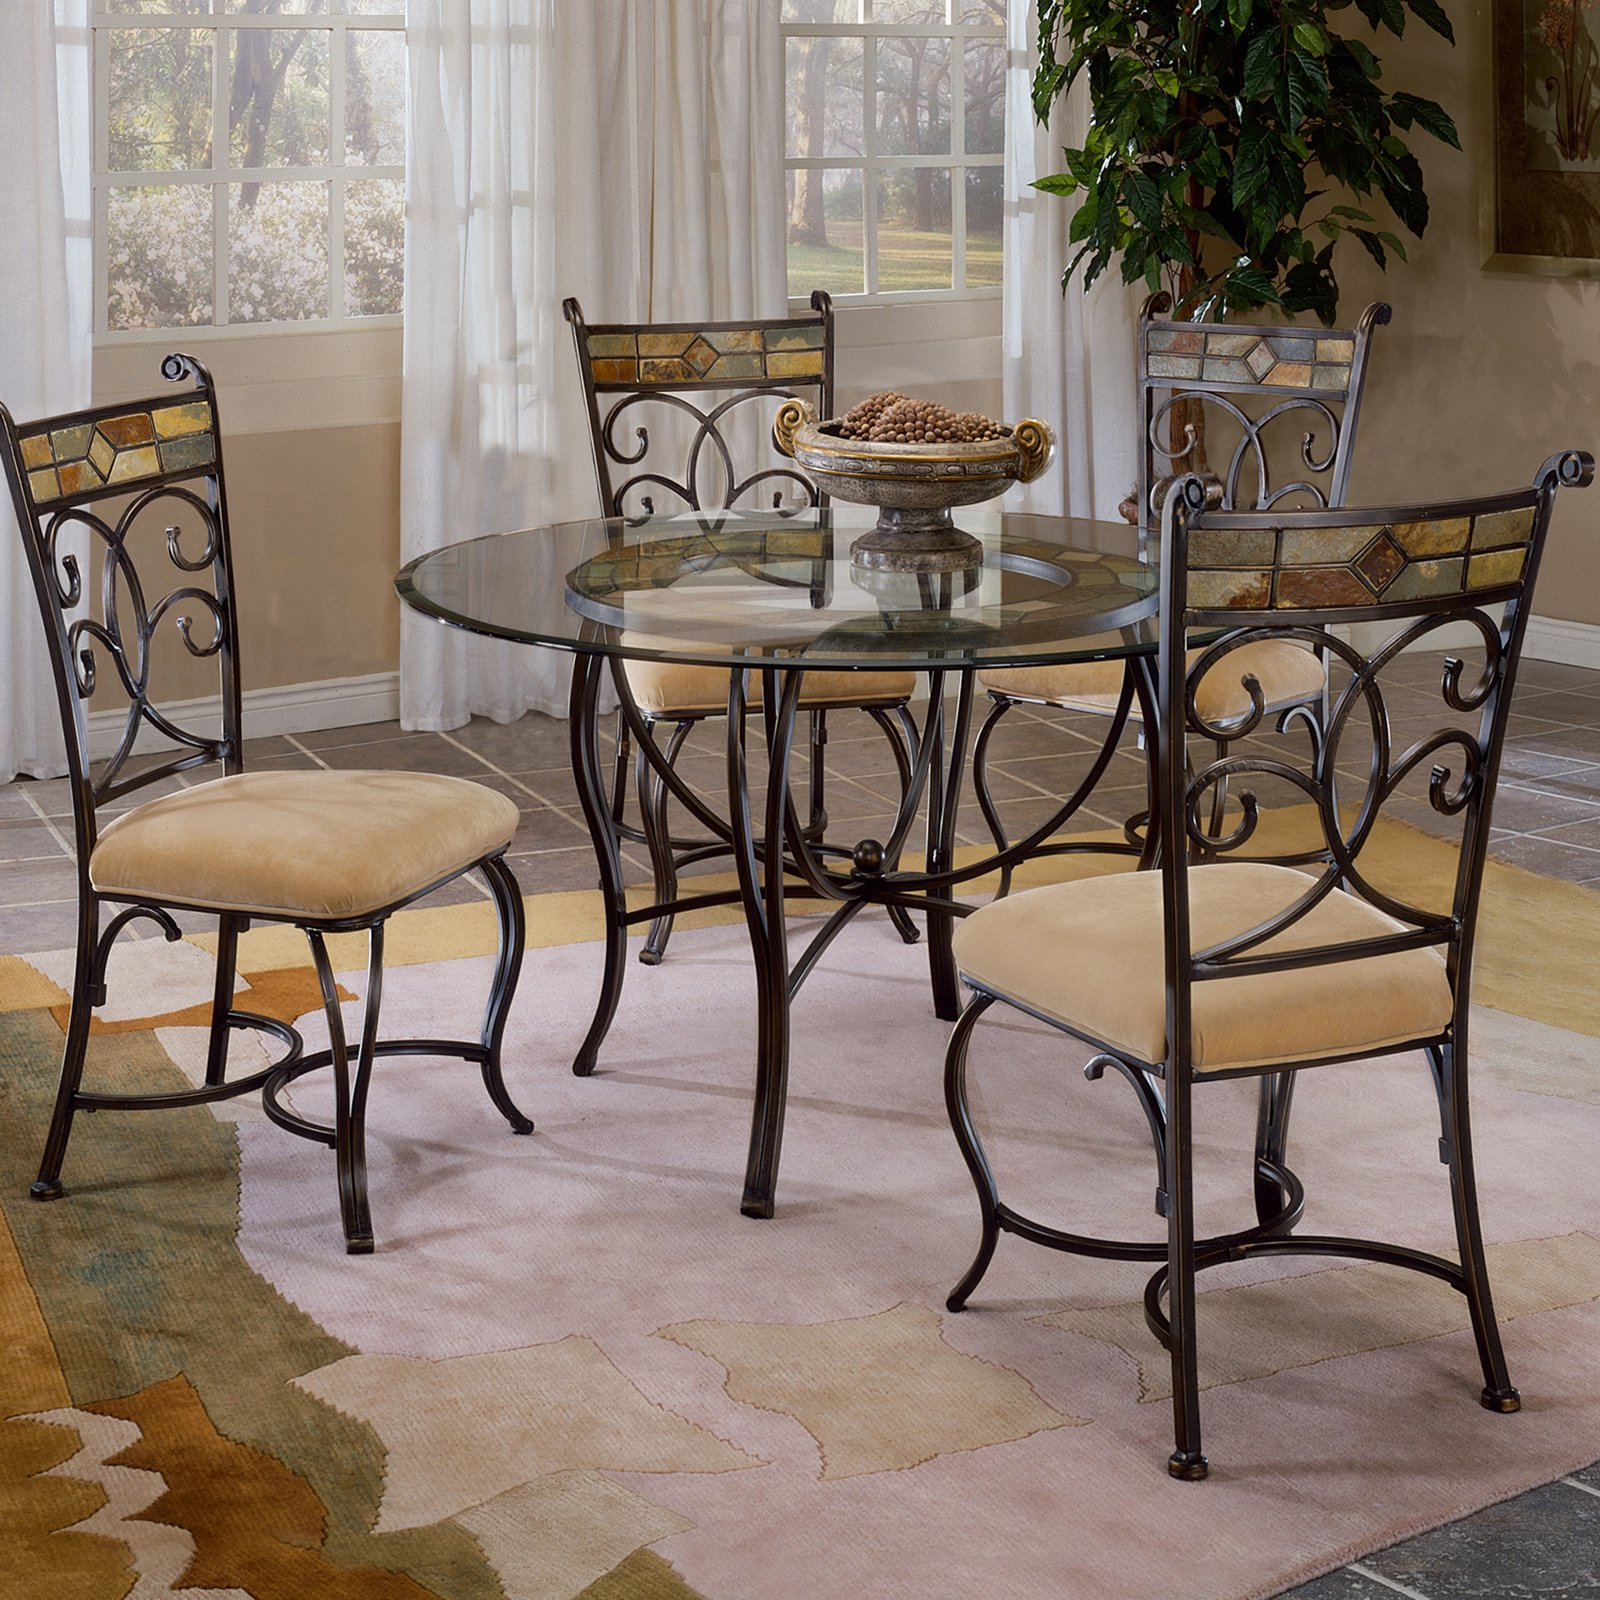 Pompei 5-Piece Dining Set with Glass Top-Black Gold/Slate Mosaic